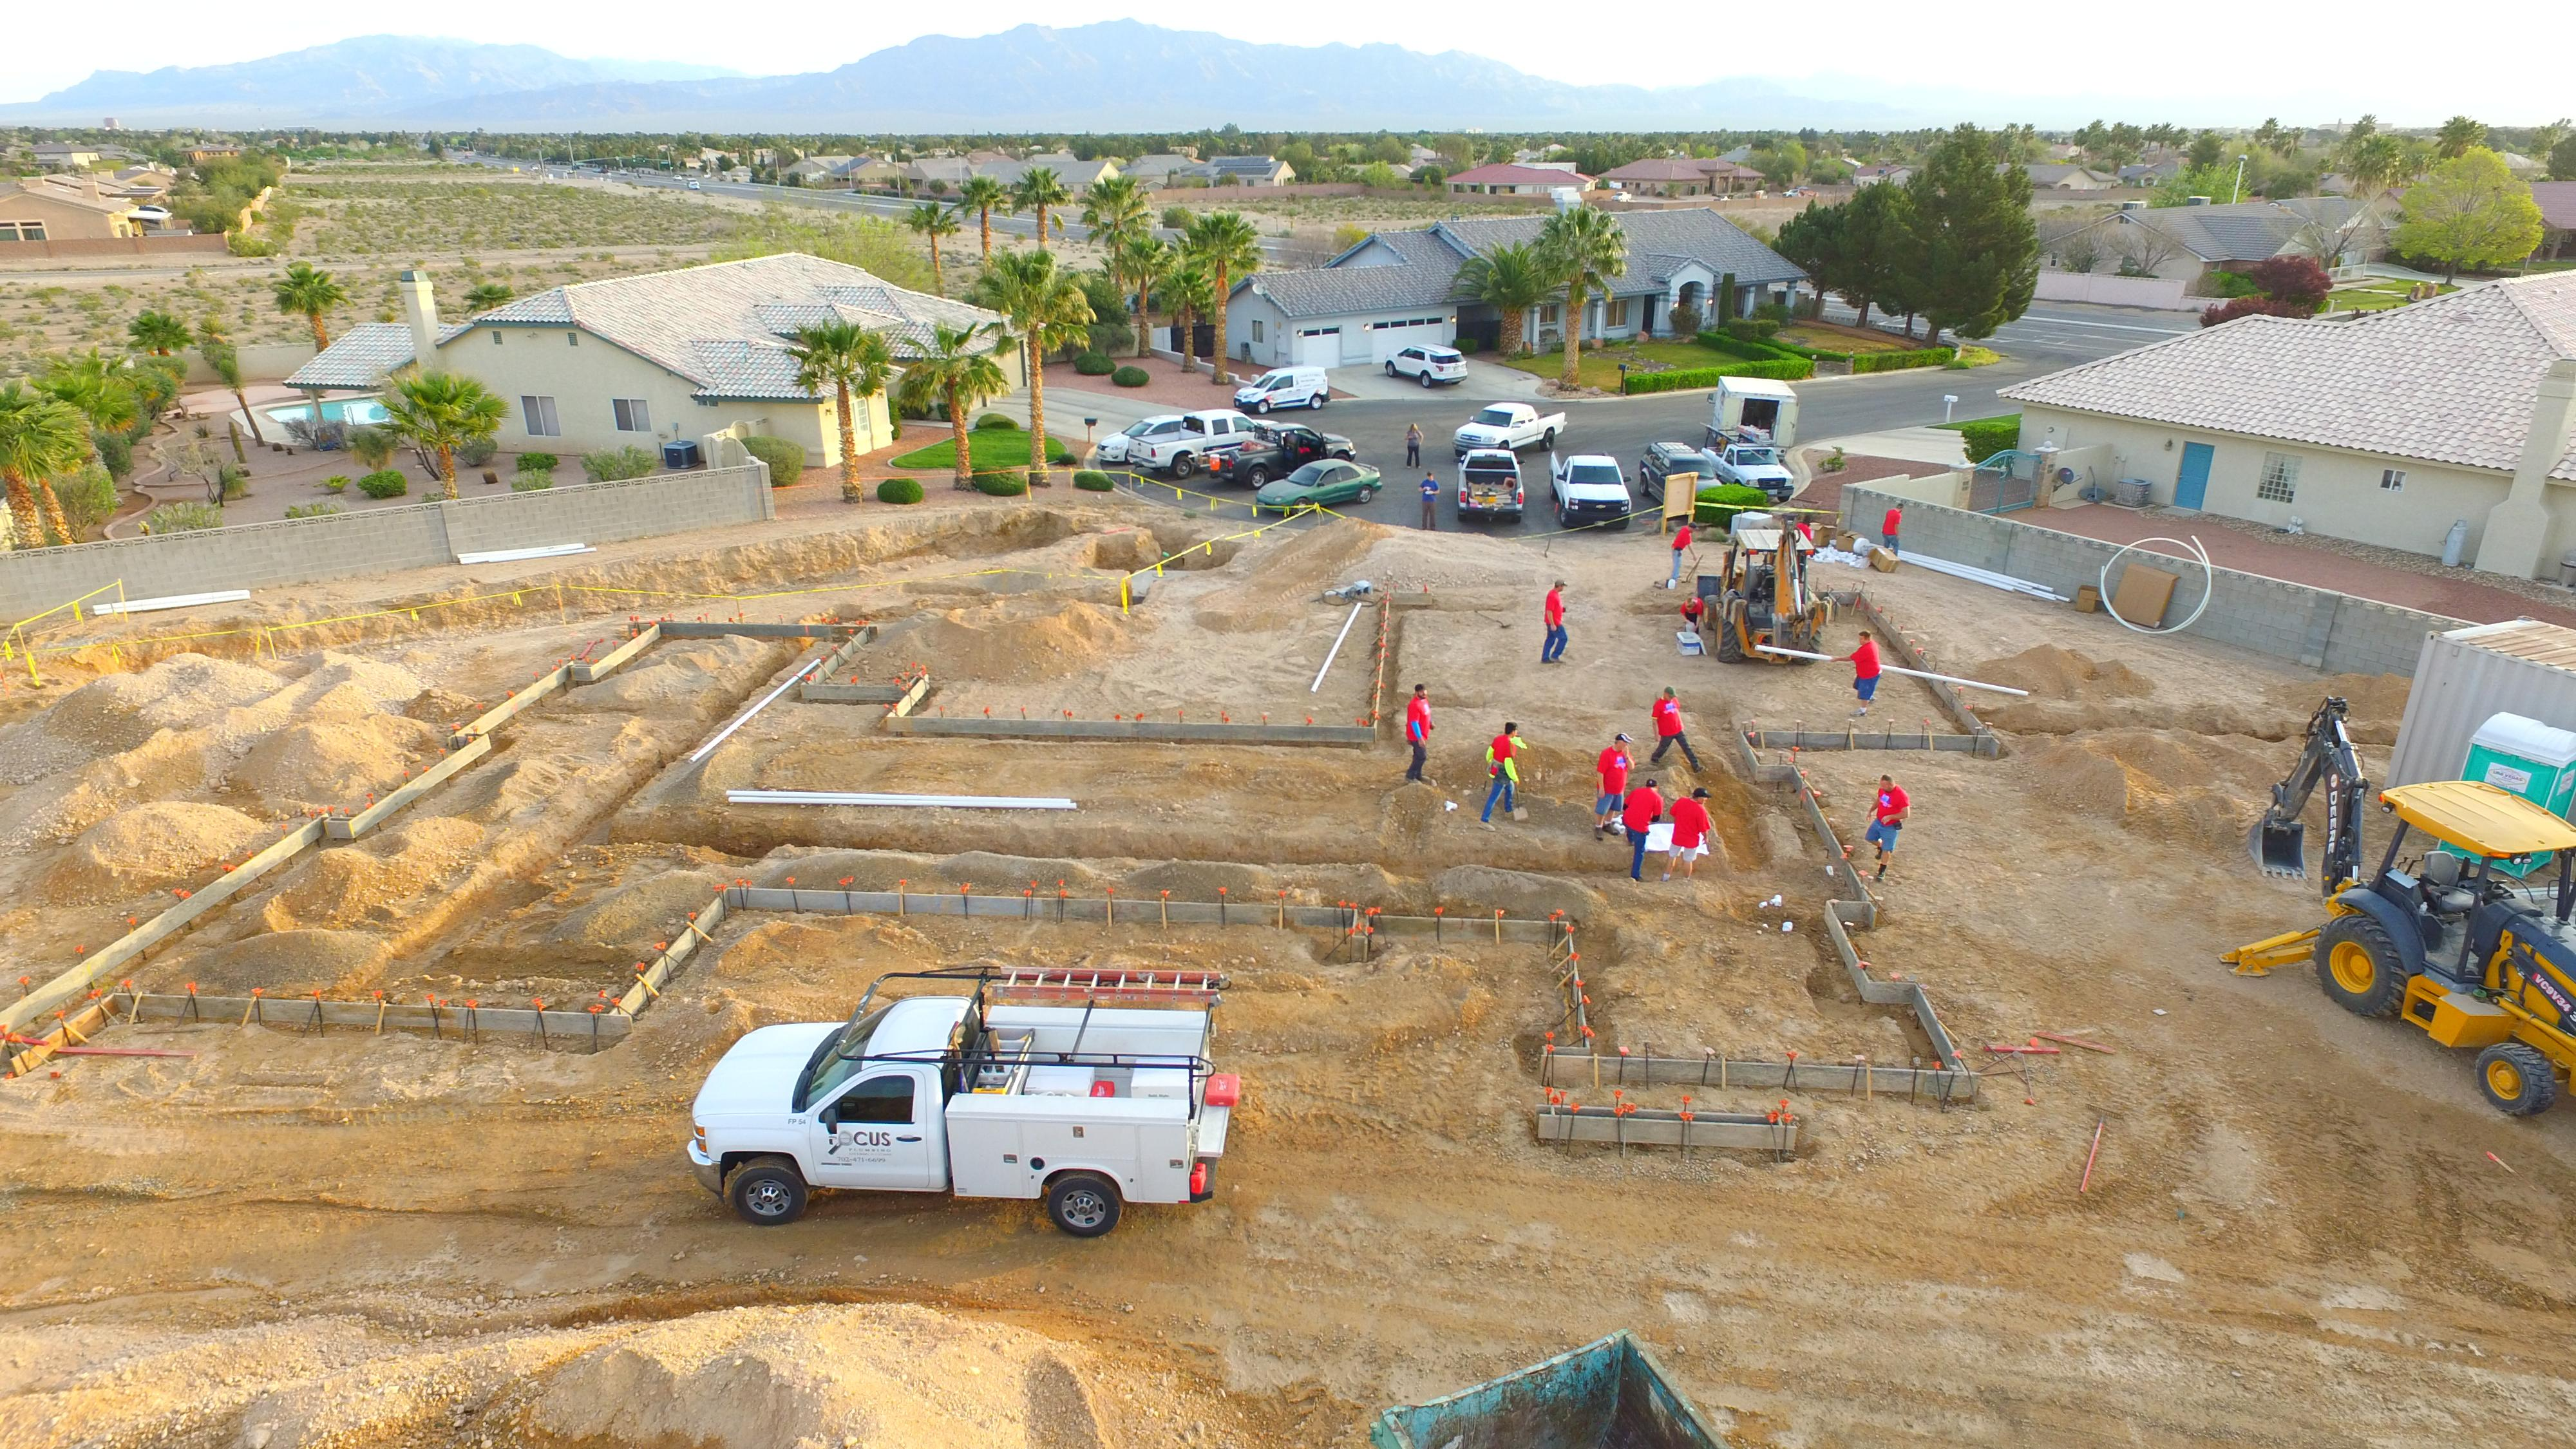 Working on Construction of St. Jude's Dream Home 15 days after construction began. Photo taken by drone on 3/18/2017.  Tickets for a chance to win the home available Wednesday, August 2, 2017 at DreamHome.org (or call 800-378-5386)  (Photo Courtesy Element Building Company)